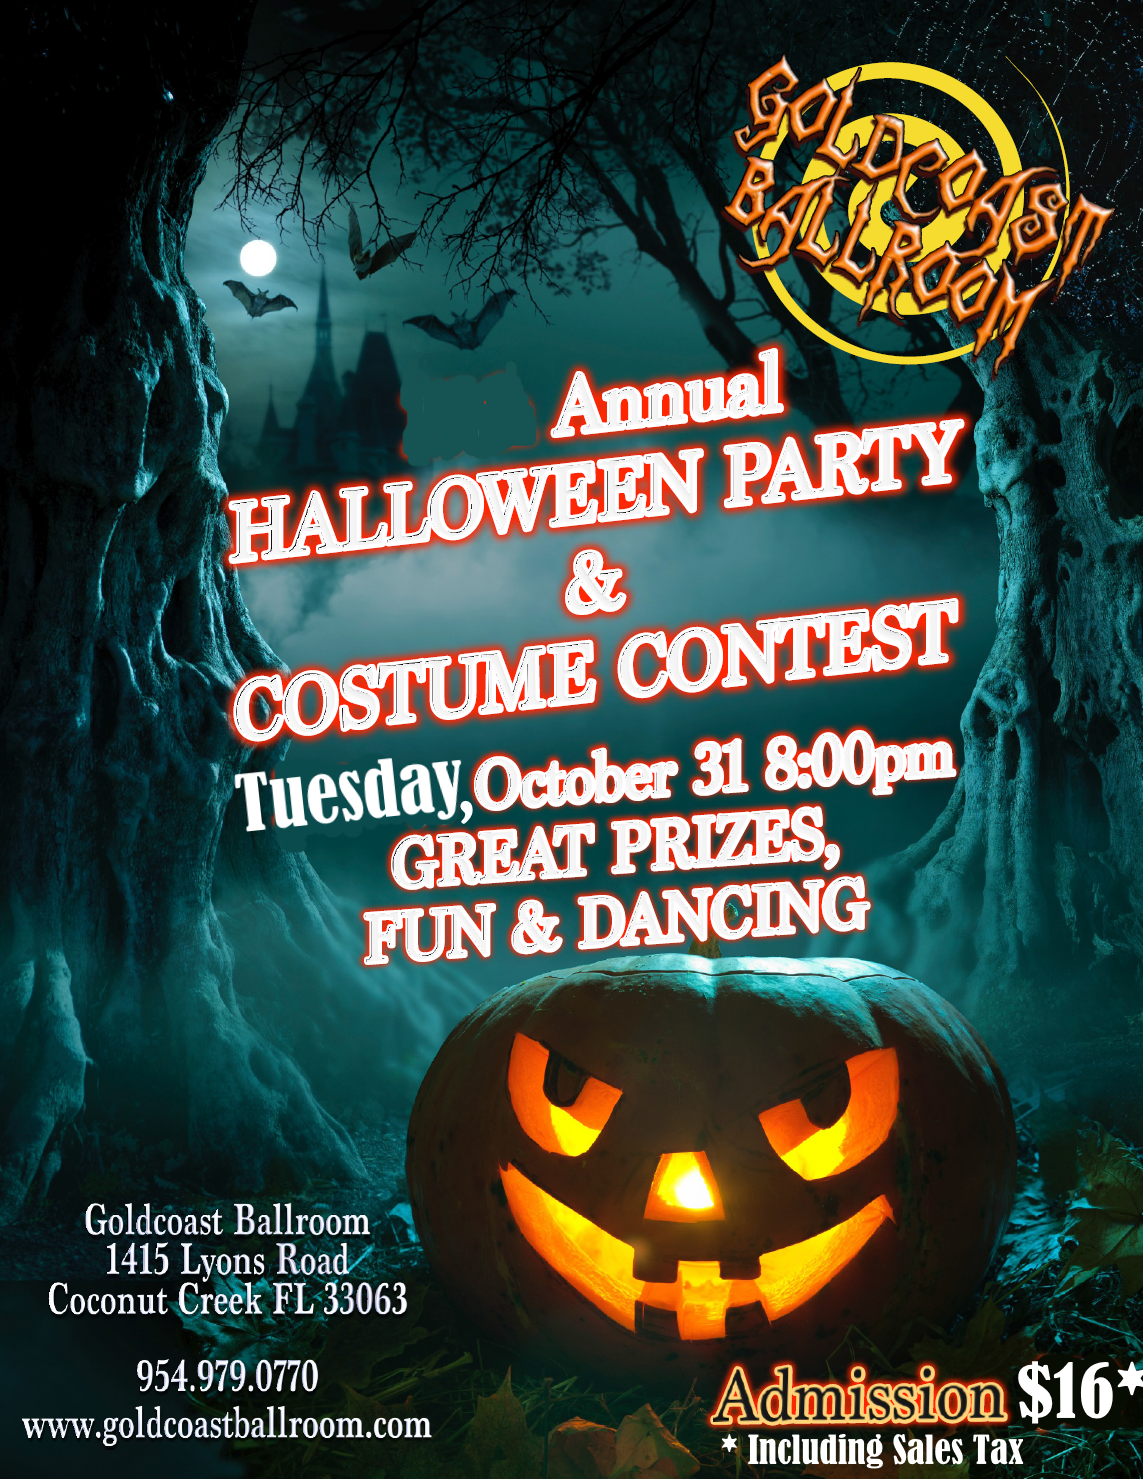 goldcoast ballroom & event center | annual halloween dance party